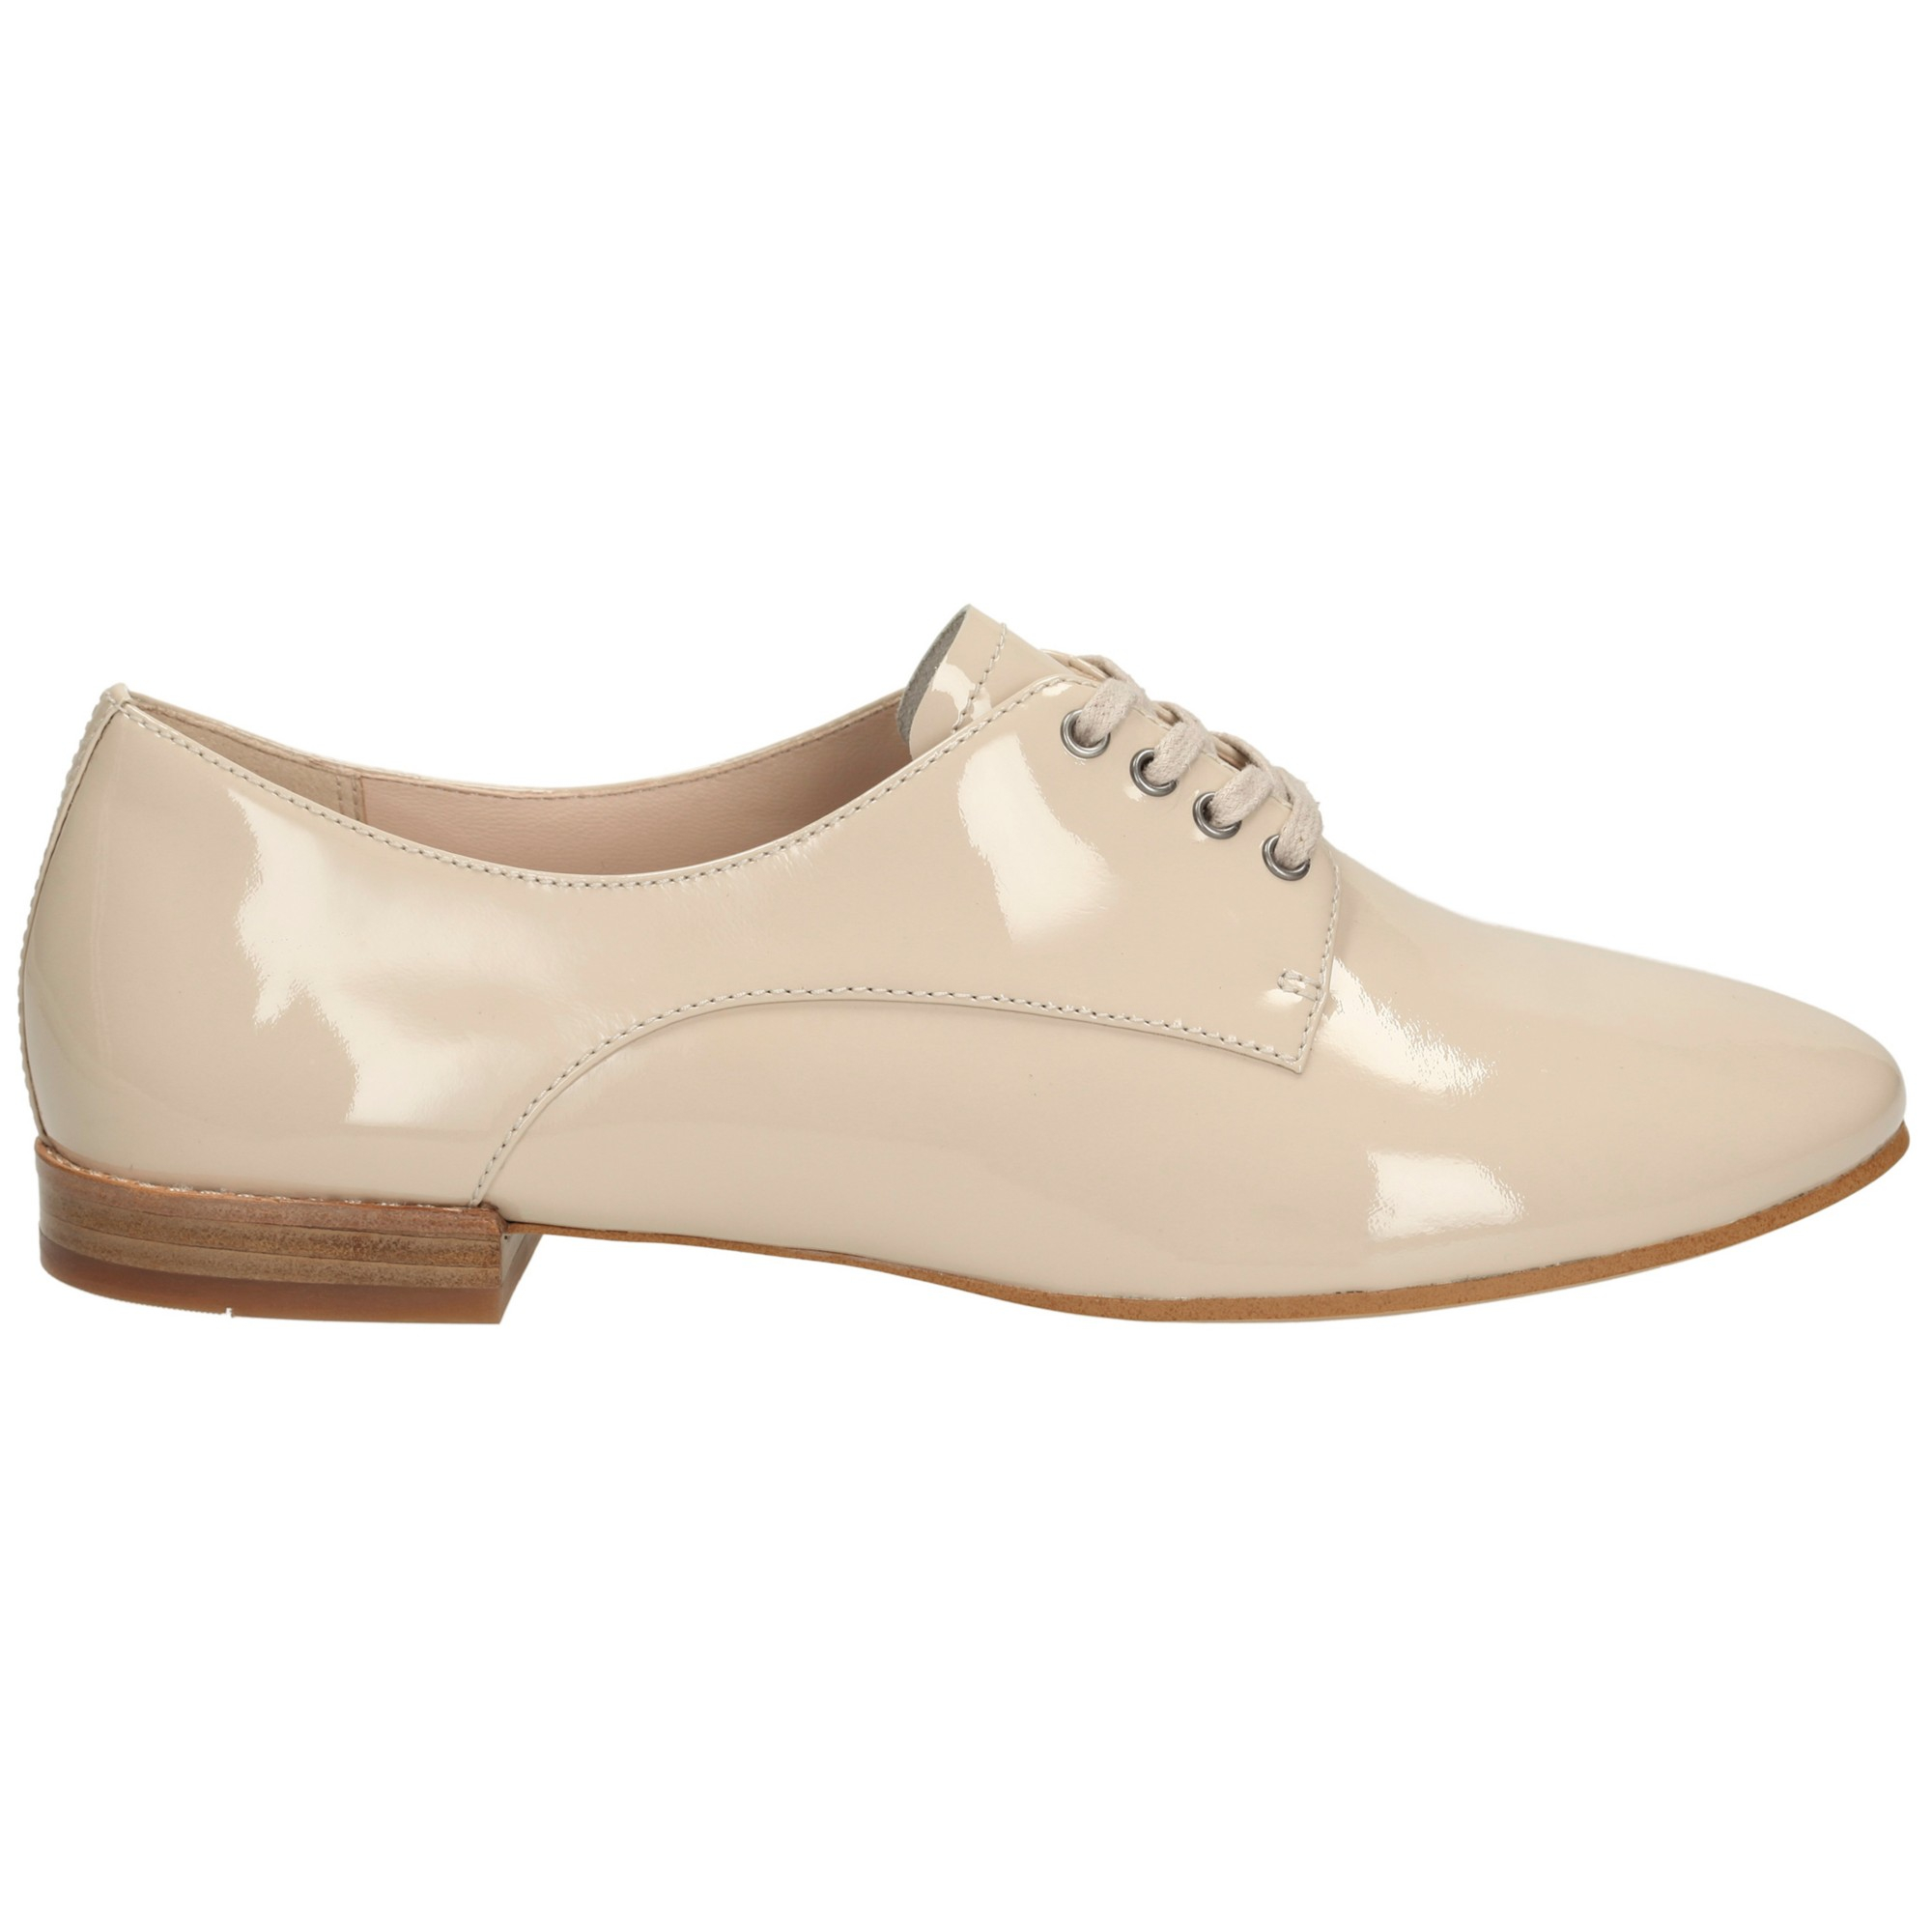 clarks festival gala patent leather shoes in lyst